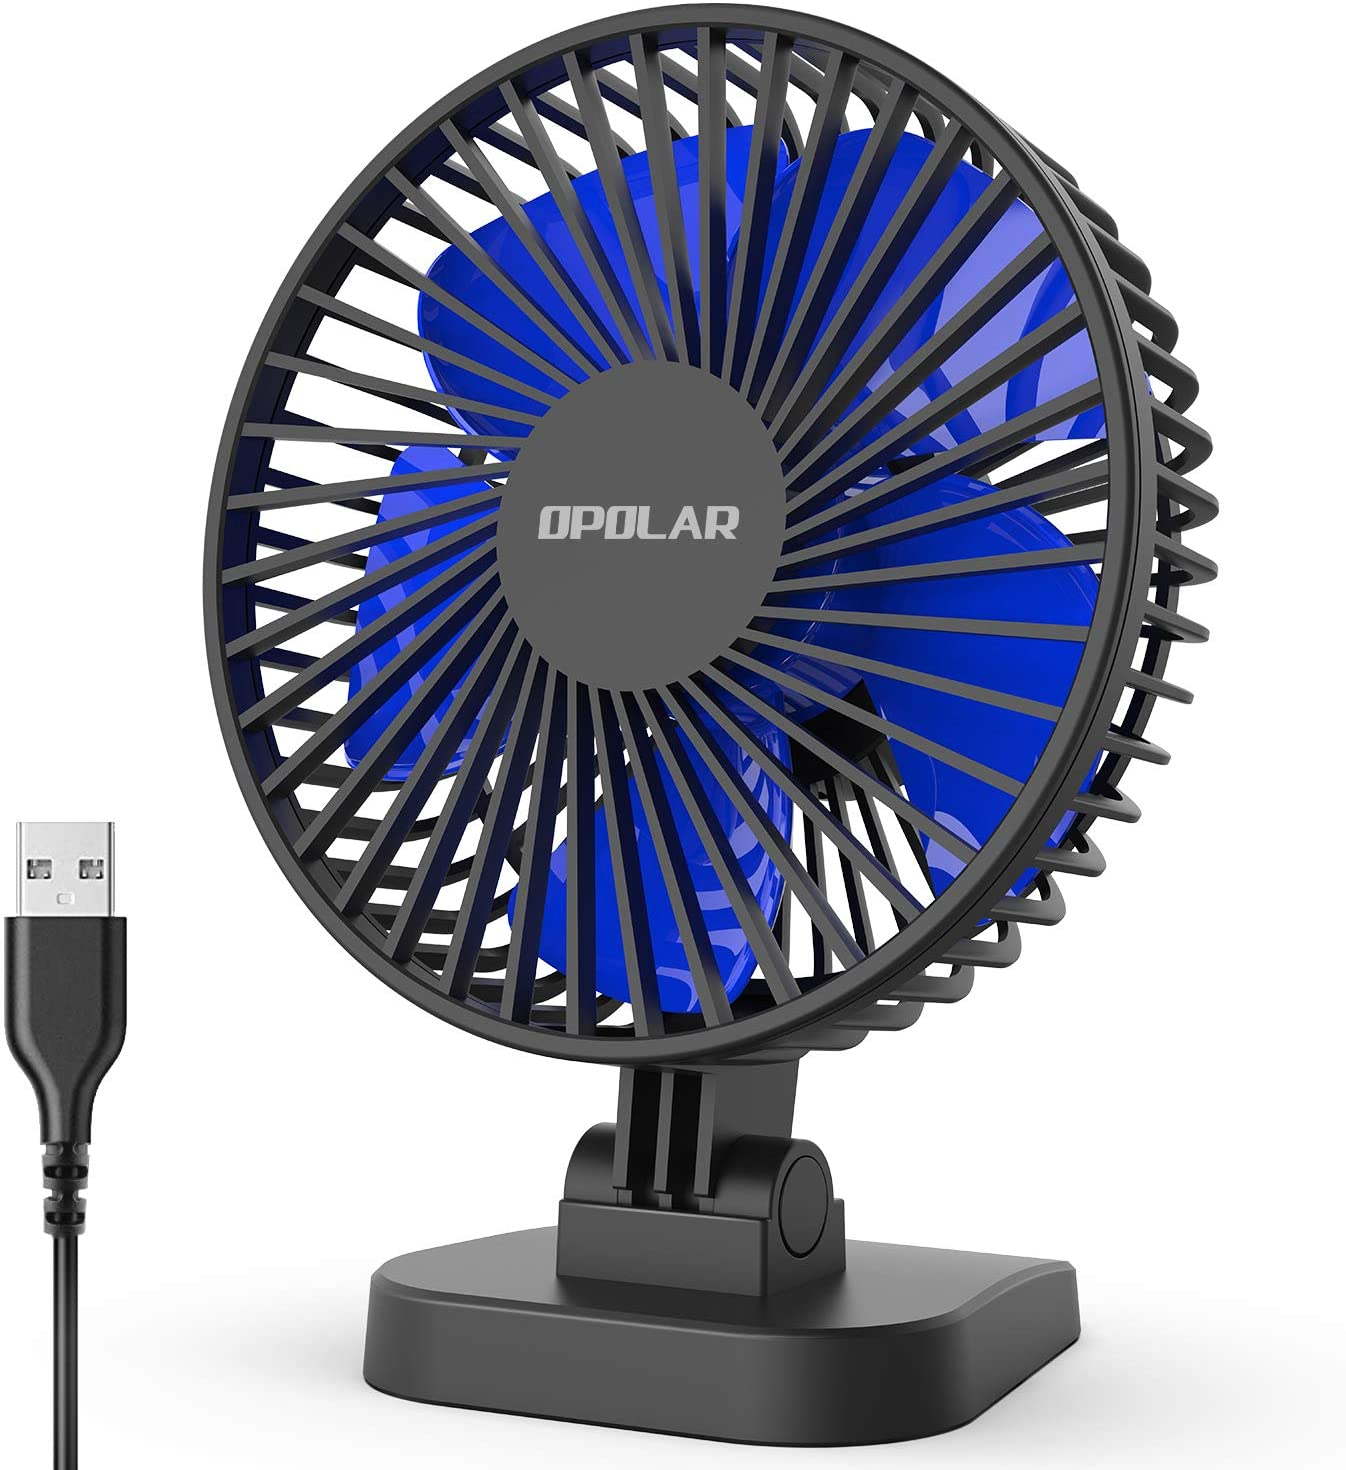 OPOLAR USB Desk Fan, Small but Mighty, Quiet Portable Fan for Desktop Office Table, 40° Adjustment for Better Cooling, 3 Speeds, 4.9 ft Cord